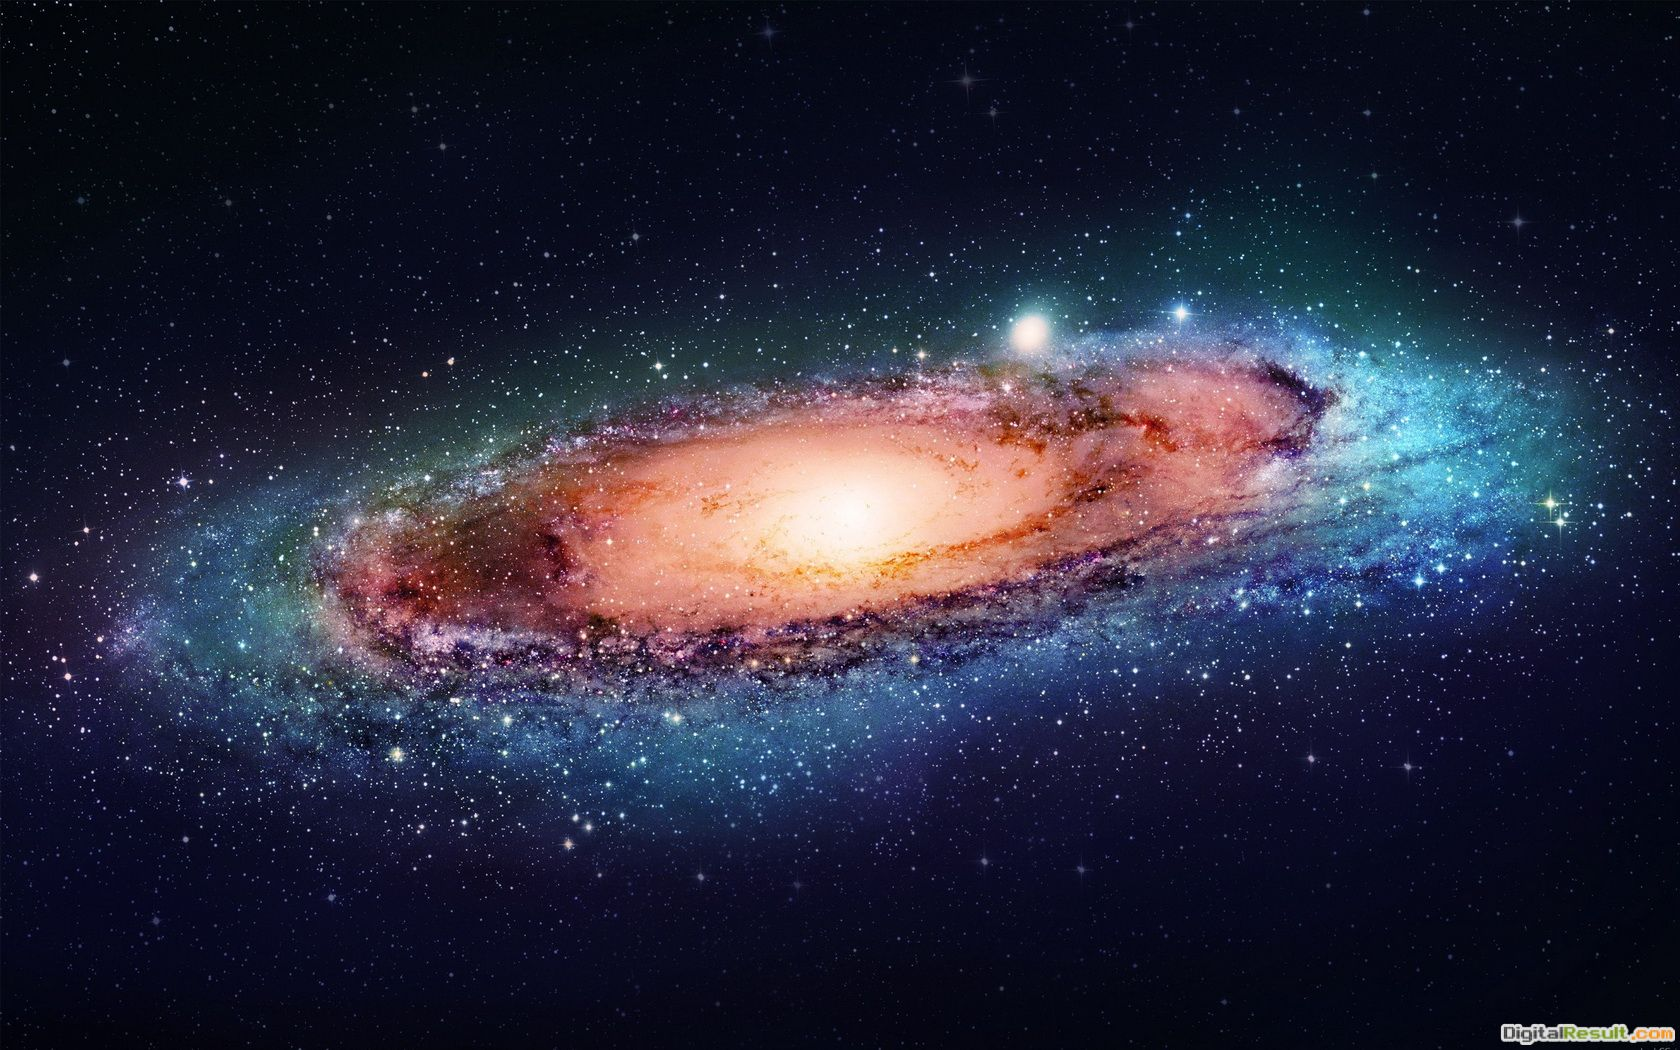 Space Galaxy Cosmos Universe Outer Space wallpaper background 292